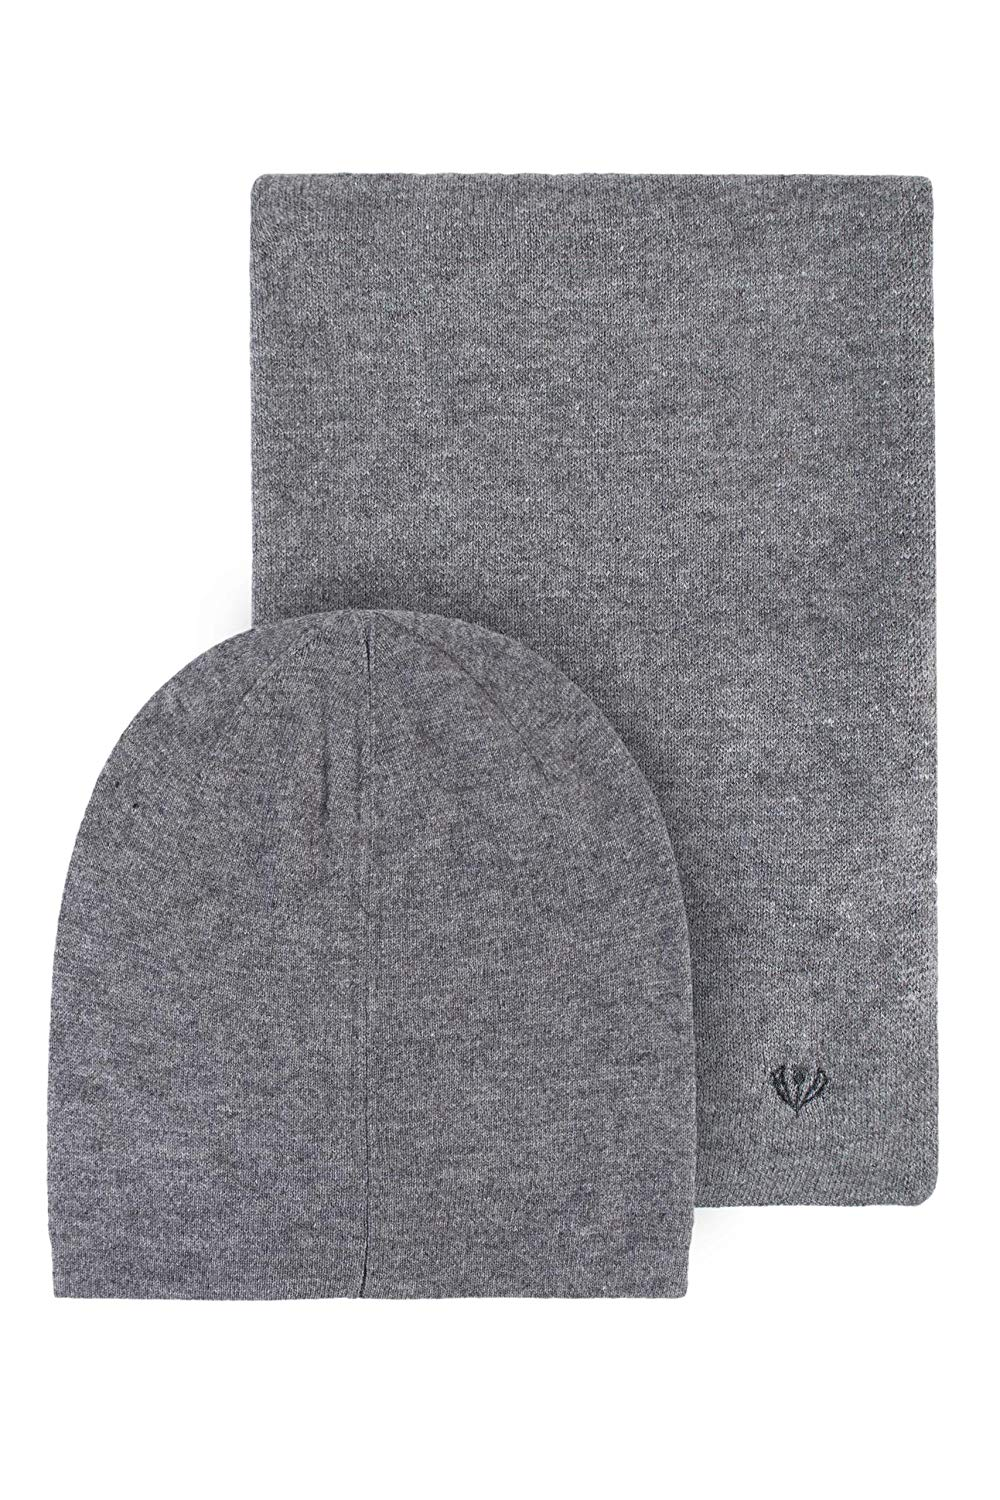 55bb046dd3e Get Quotations · Mens Fraas Wool and Cashmere Blend Plain Hat and Scarf Set